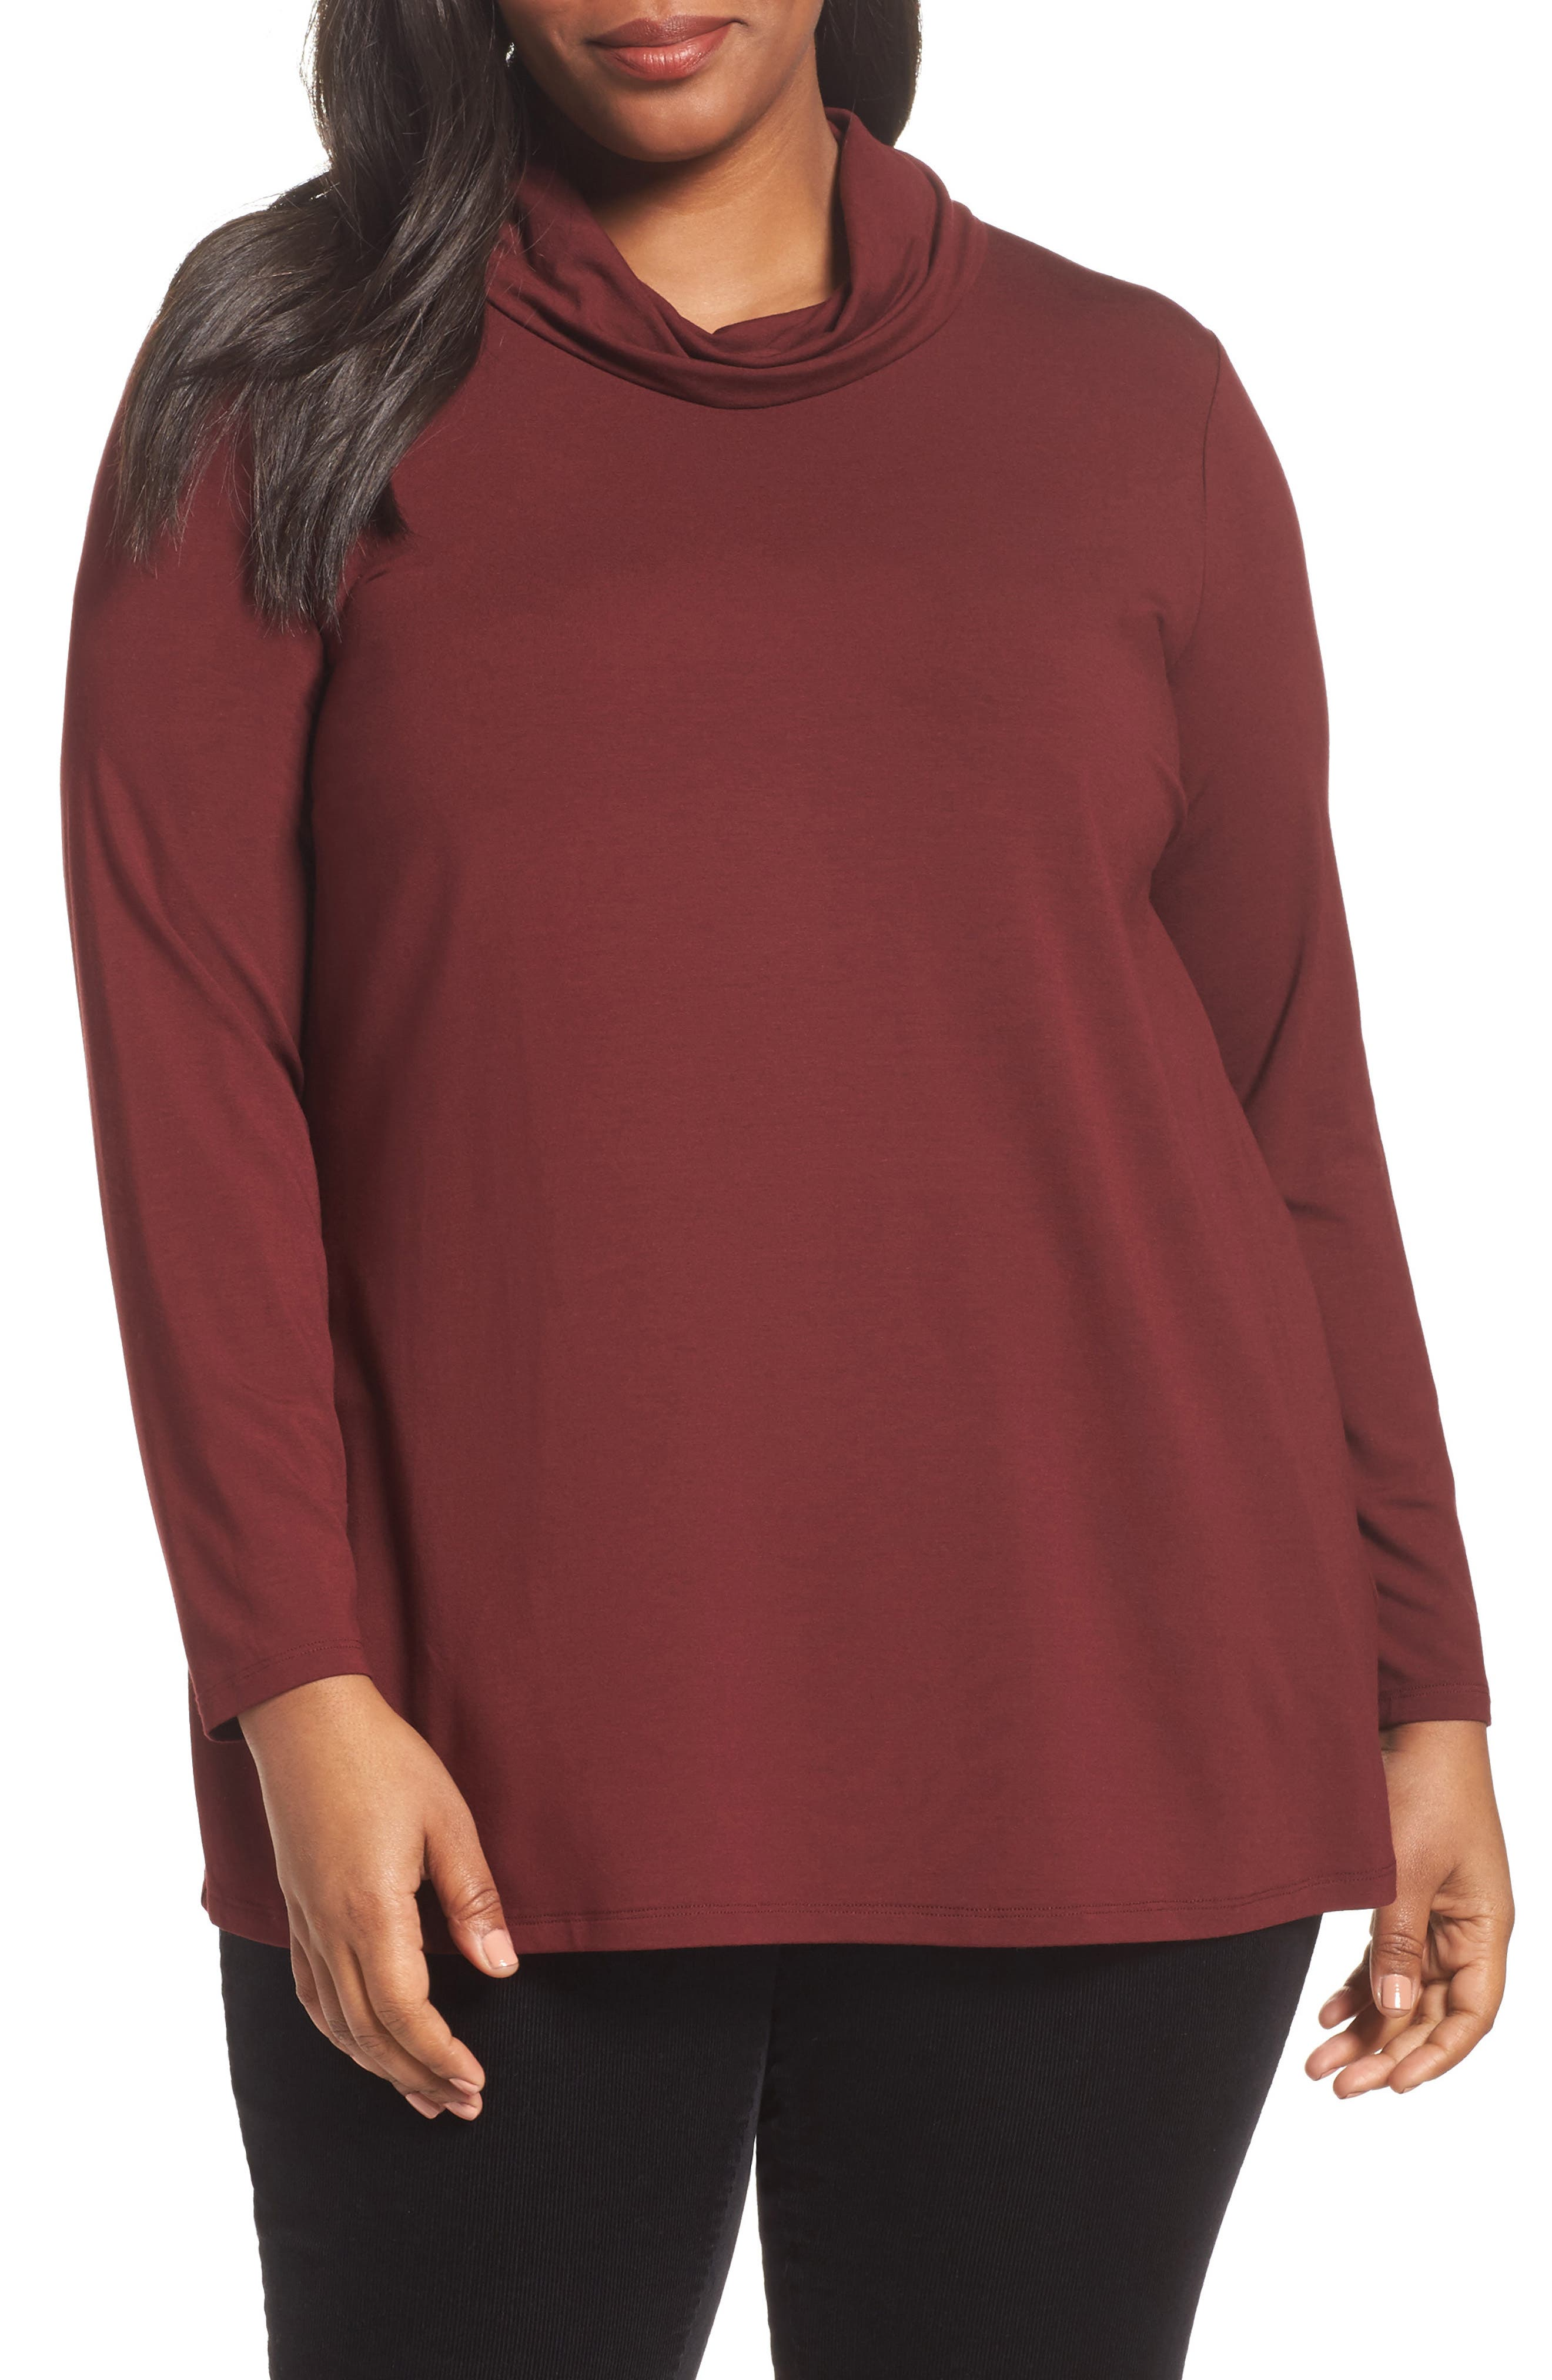 Alternate Image 1 Selected - Eileen Fisher Turtleneck Jersey Top (Plus Size)